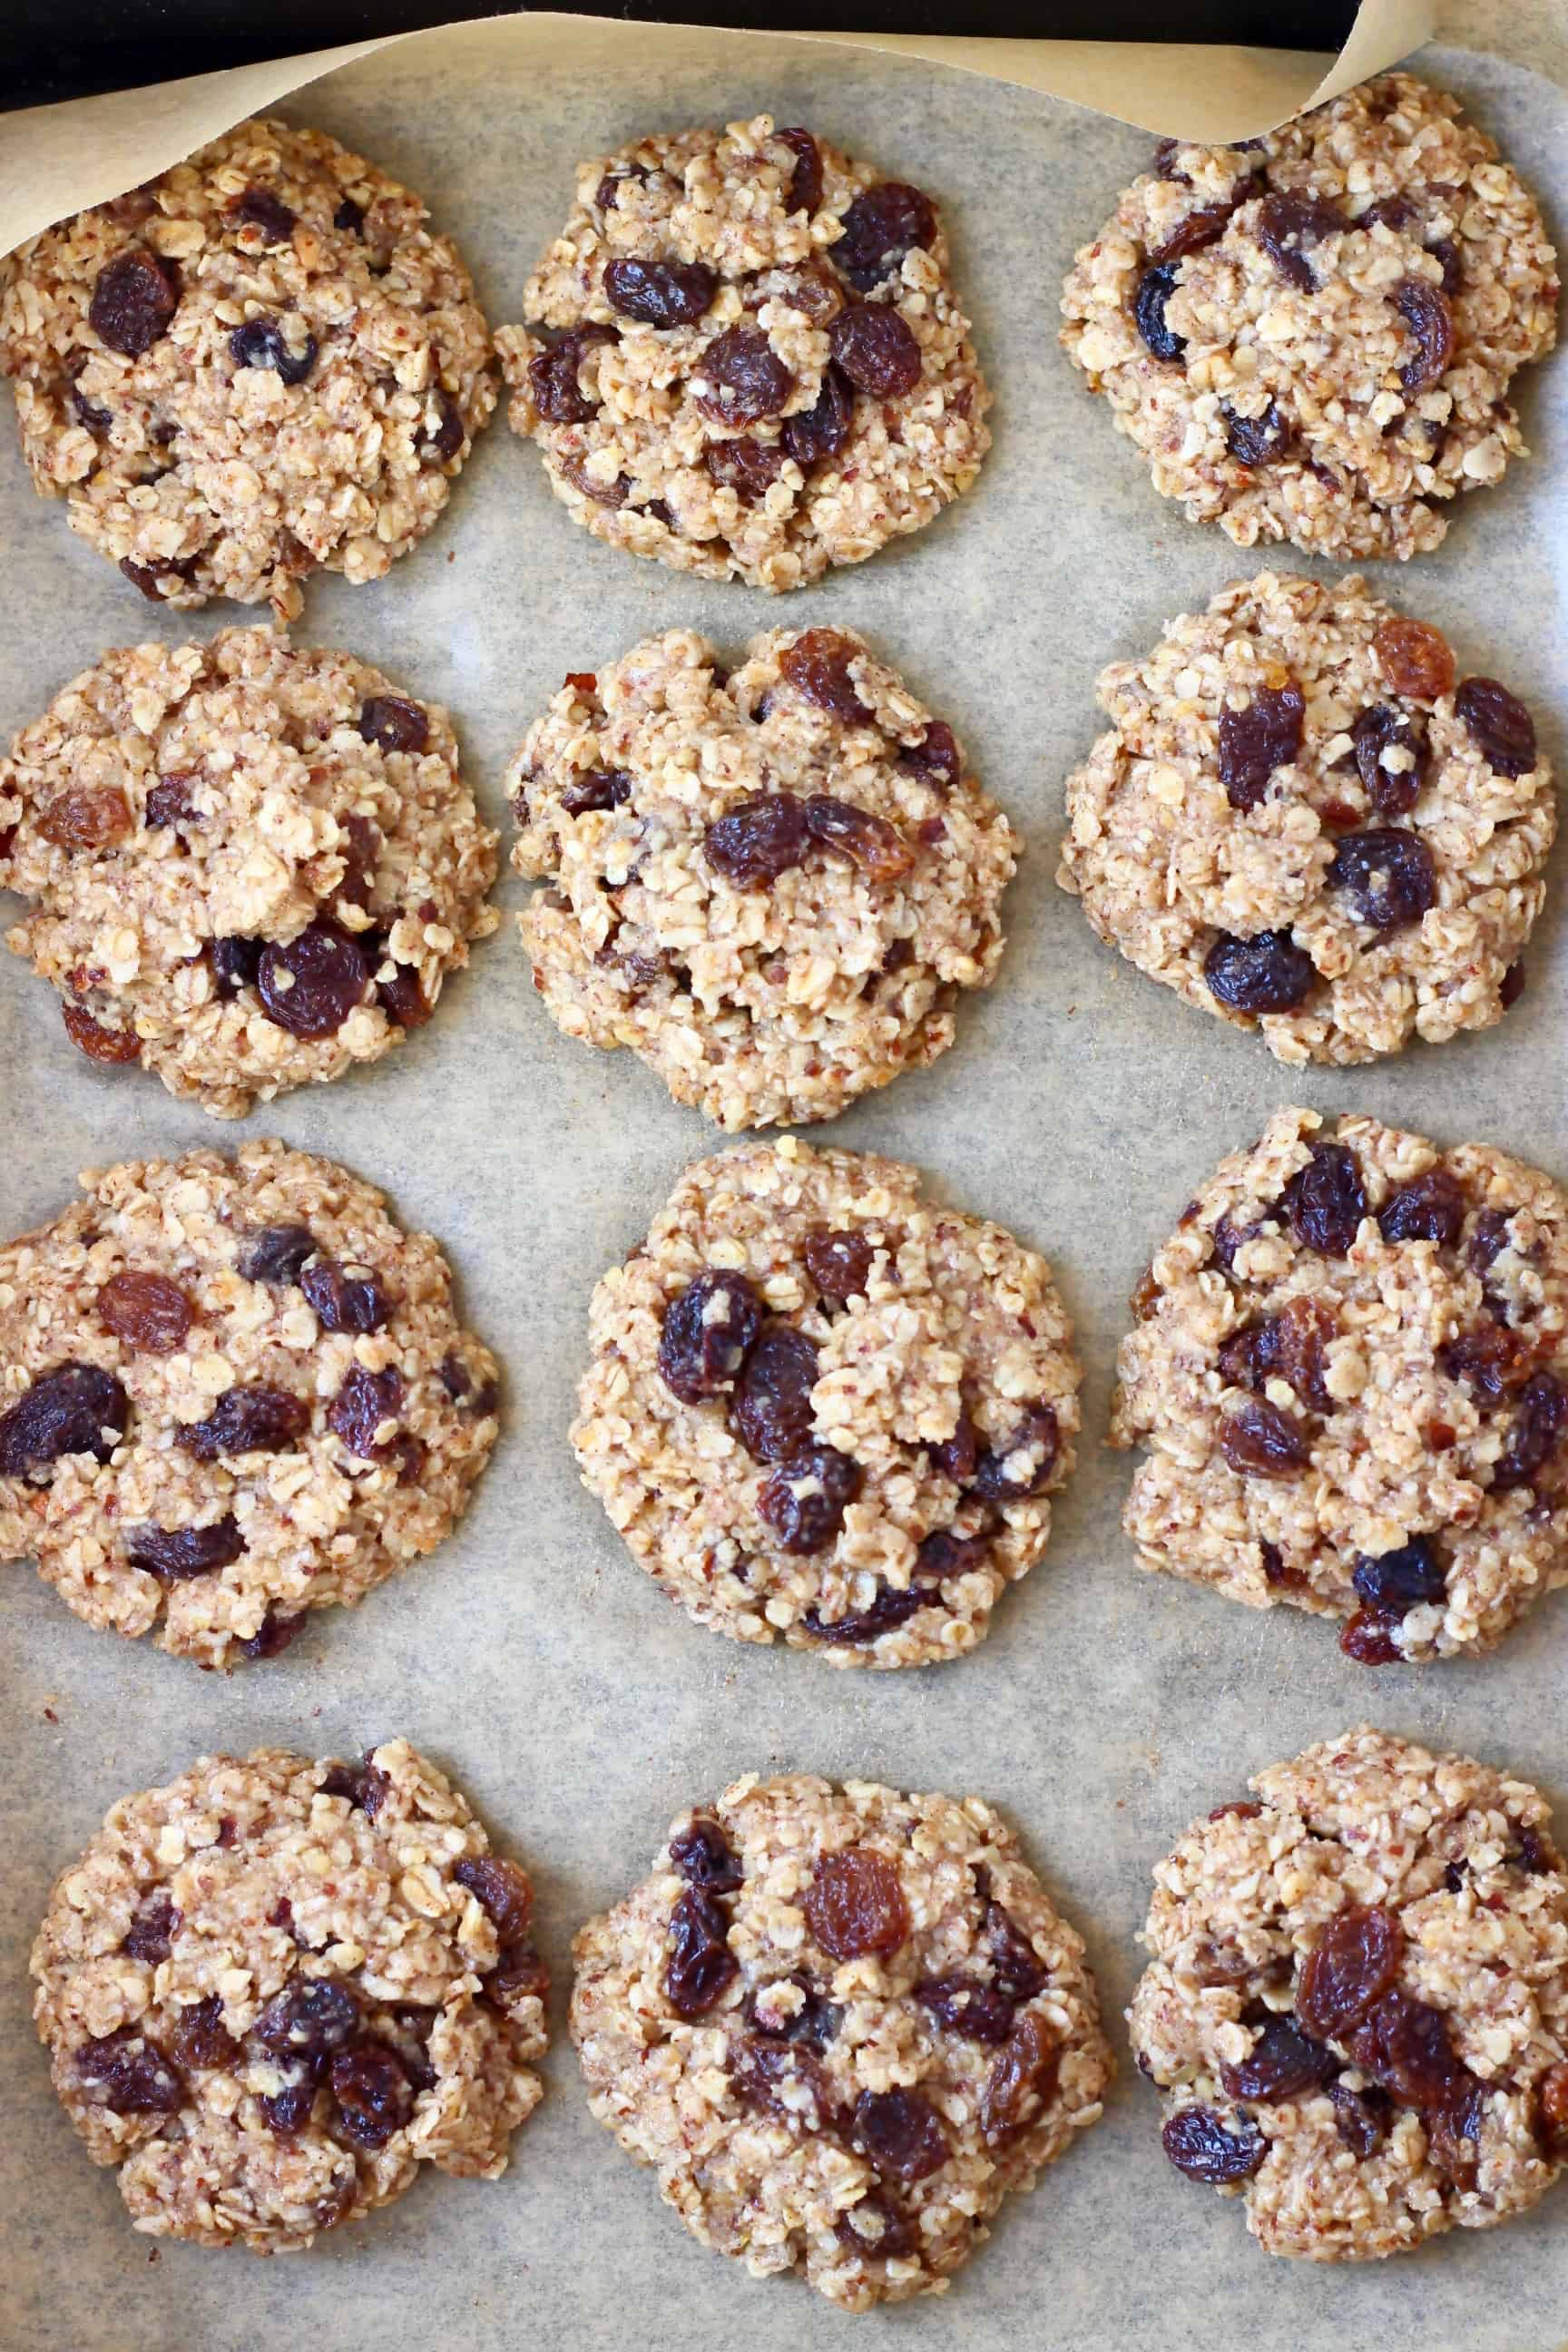 Twelve raw gluten-free vegan oatmeal raisin cookies on a baking tray lined with baking paper